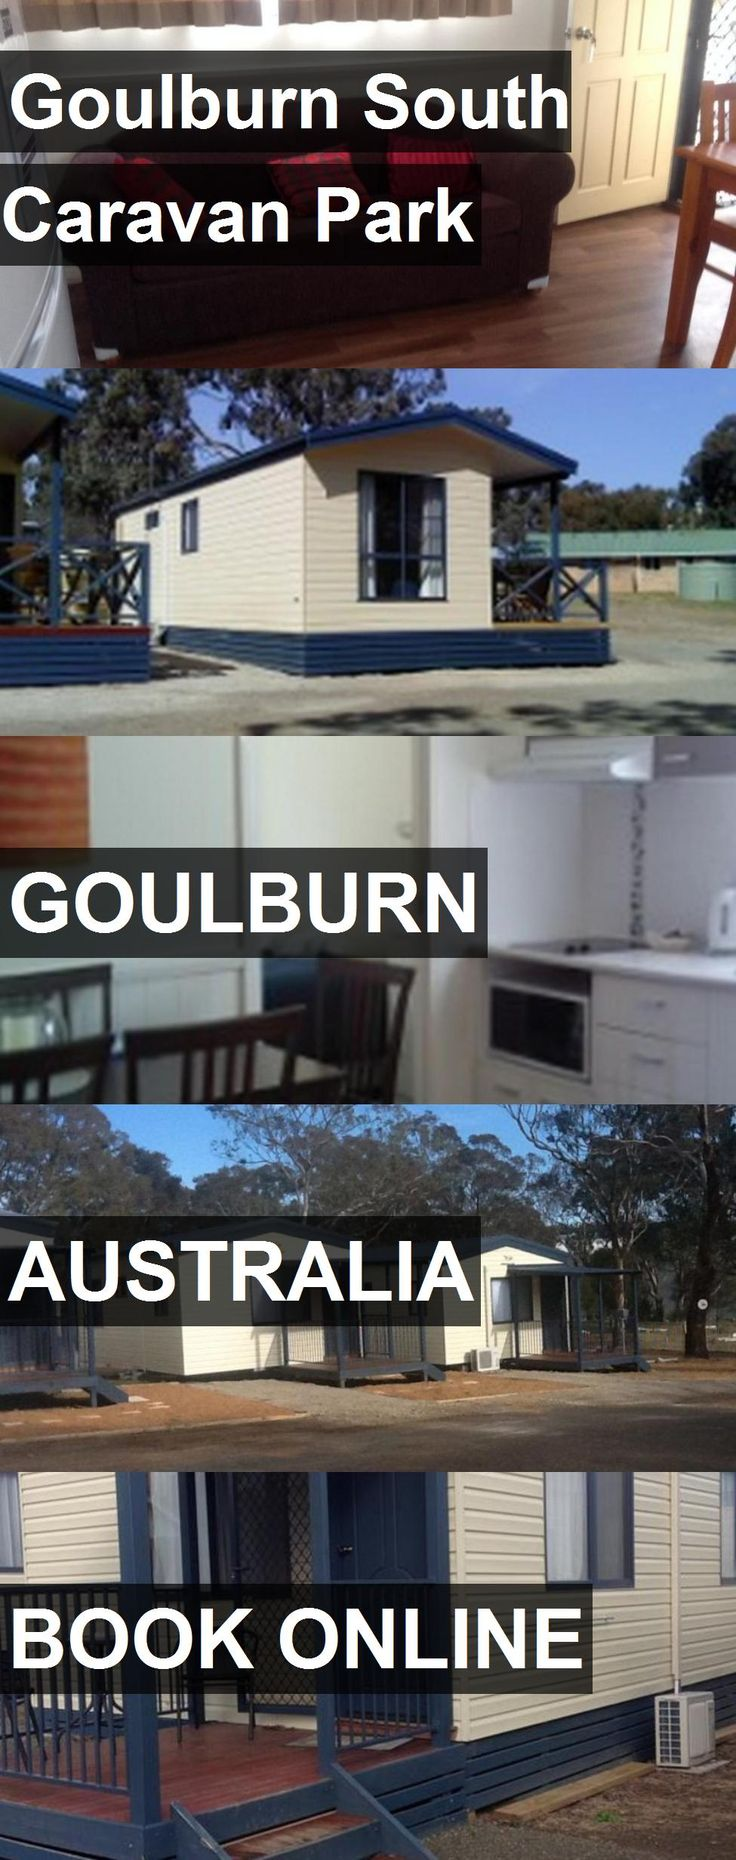 Hotel Goulburn South Caravan Park in Goulburn, Australia. For more information, photos, reviews and best prices please follow the link. #Australia #Goulburn #travel #vacation #hotel